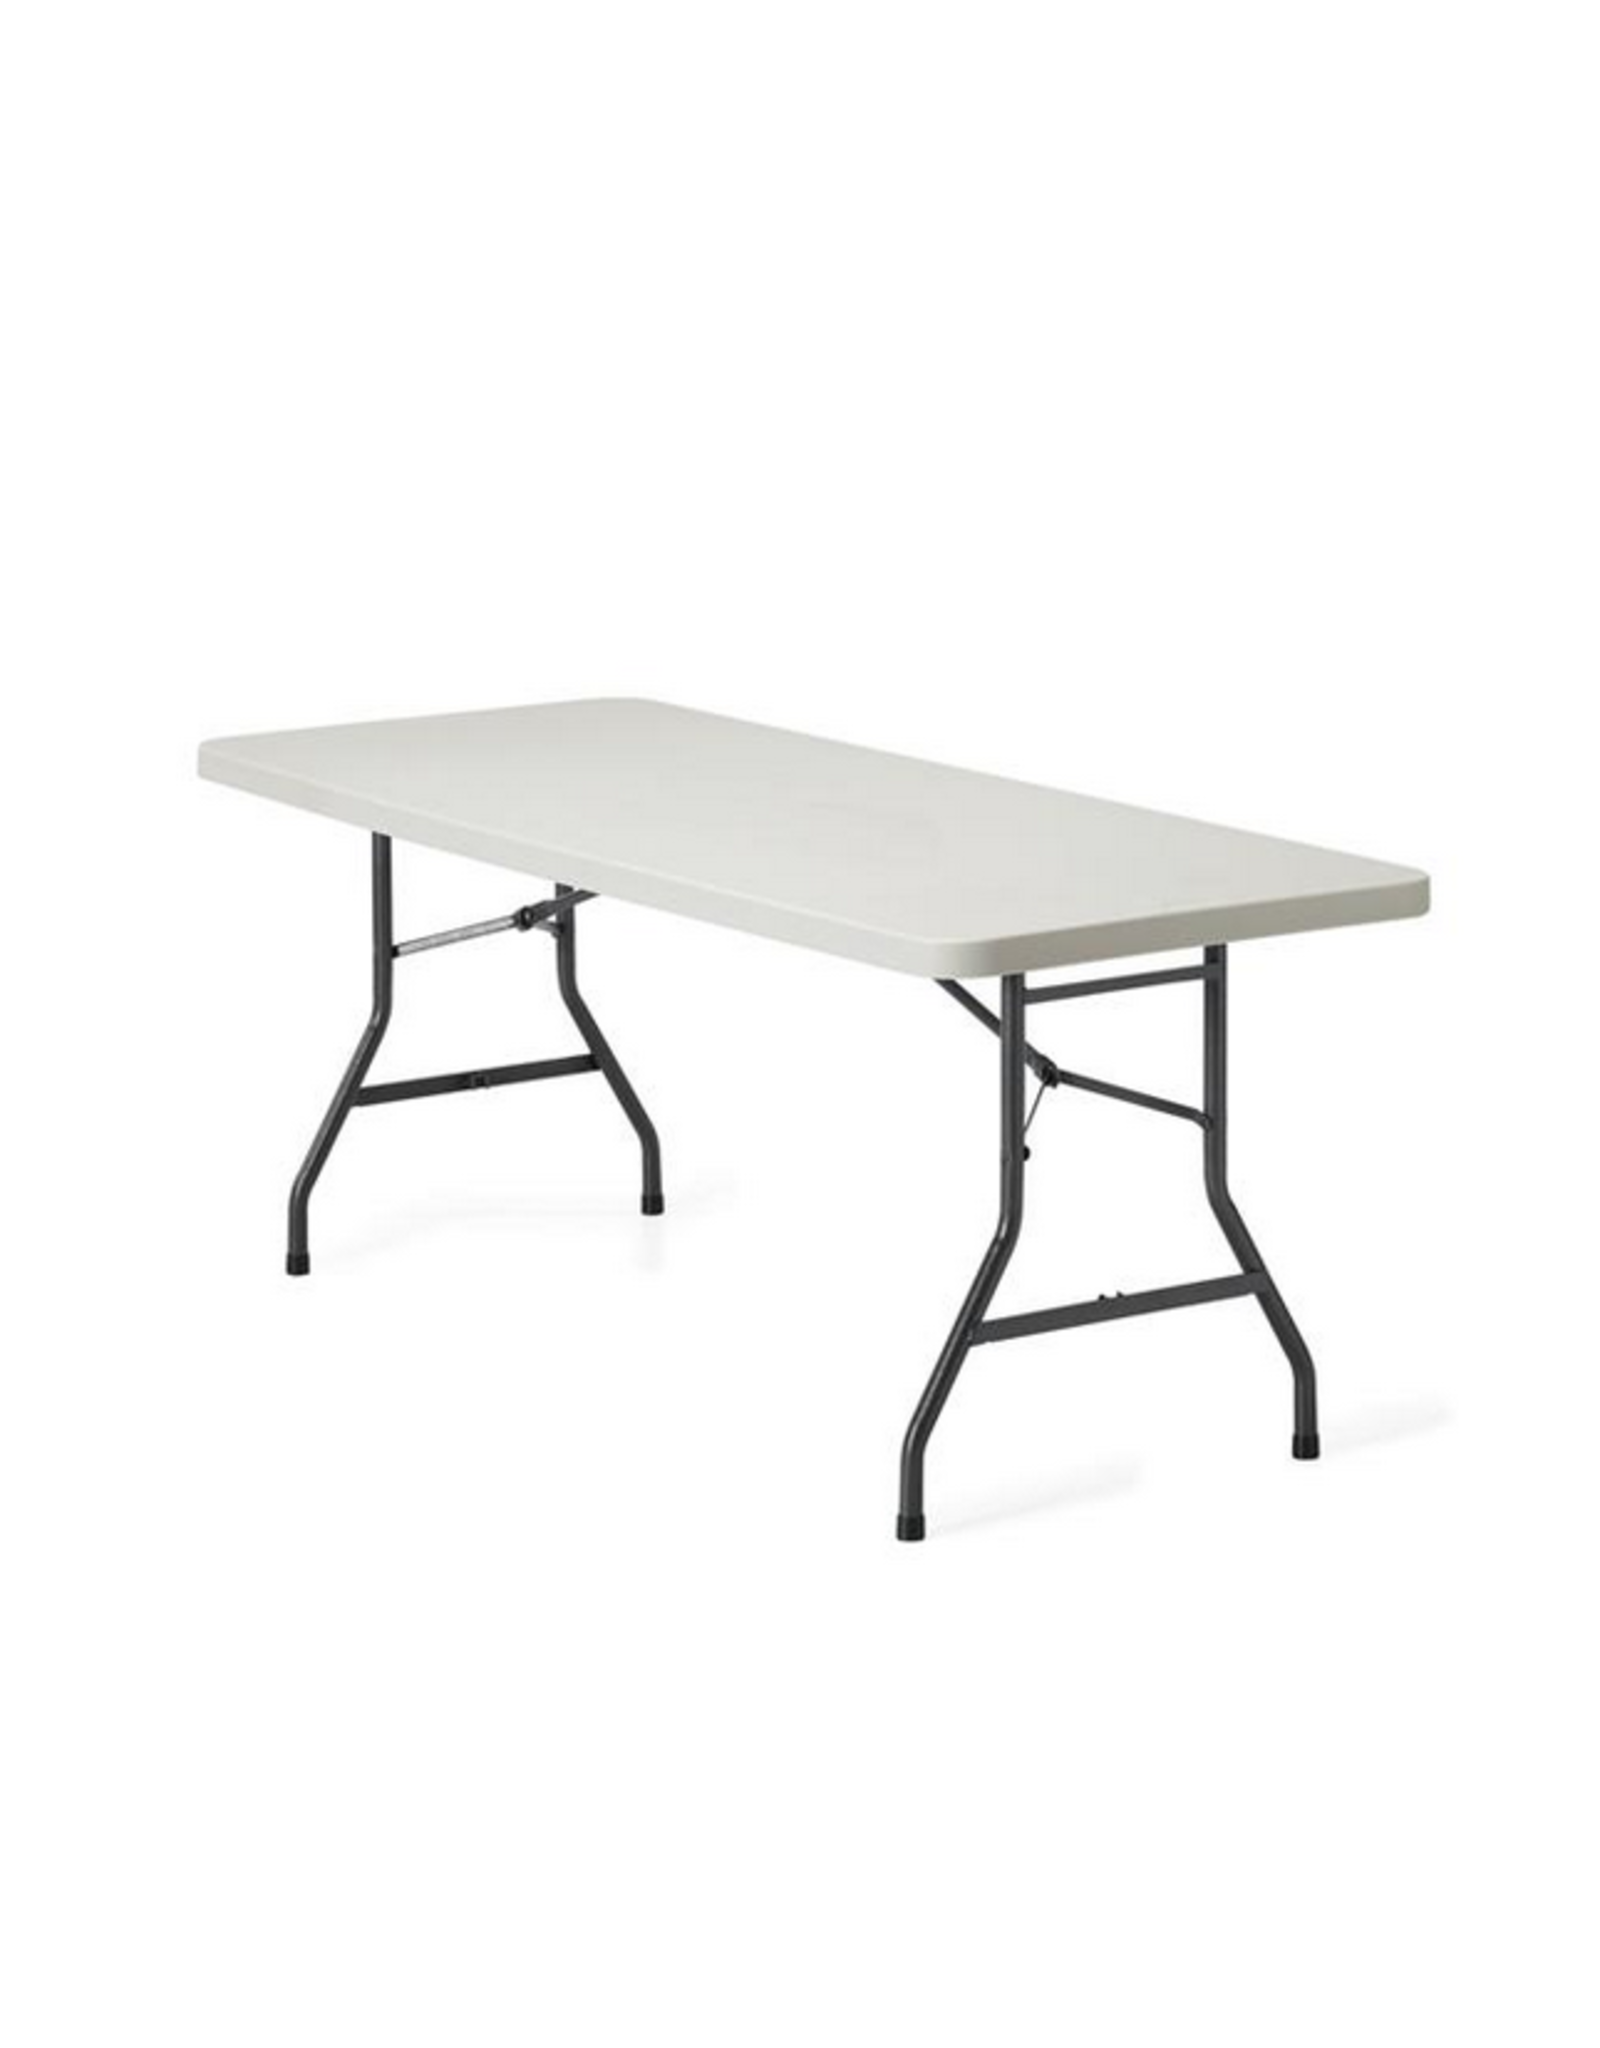 "GLOBAL OFFICE Global Offices To Go, Lite-Lift II Folding Rectangular Table, Plastic and Steel, Oyster Grey, 72""W x 30""D x 29 1/4""H"